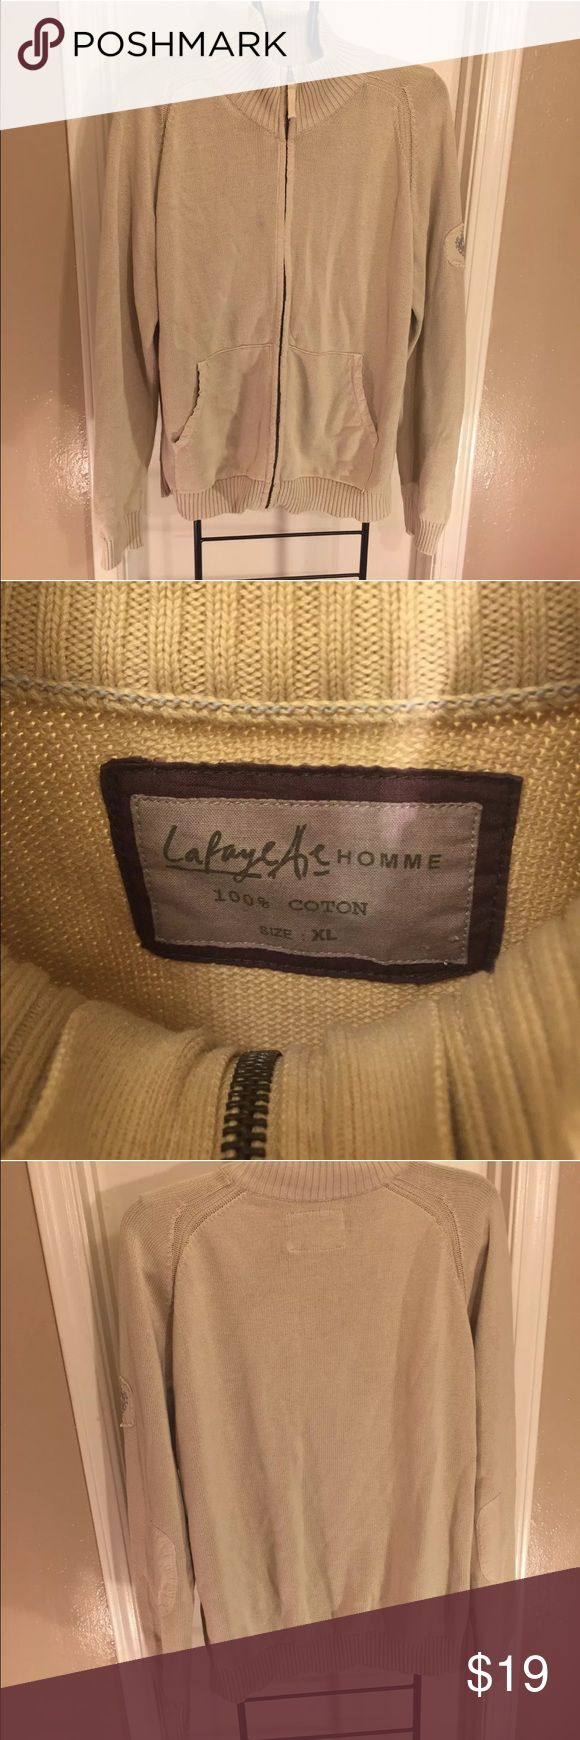 """Lafayette Homme Beige Zip Front Sweater Size XL Pre-Owned Lafayette Homme Beige Zip Front Sweater Size XL.  Its in good condition!  Minimal wear visible. No rips or holes. Material: 100% Cotton.  Measurements: length 27"""" x sleeve 31""""x arm pit to arm pit 25"""".   Please review photos carefully before purchasing and message me with any questions. Smoke and pet free environment. Lafayette Homme Sweaters Zip Up"""